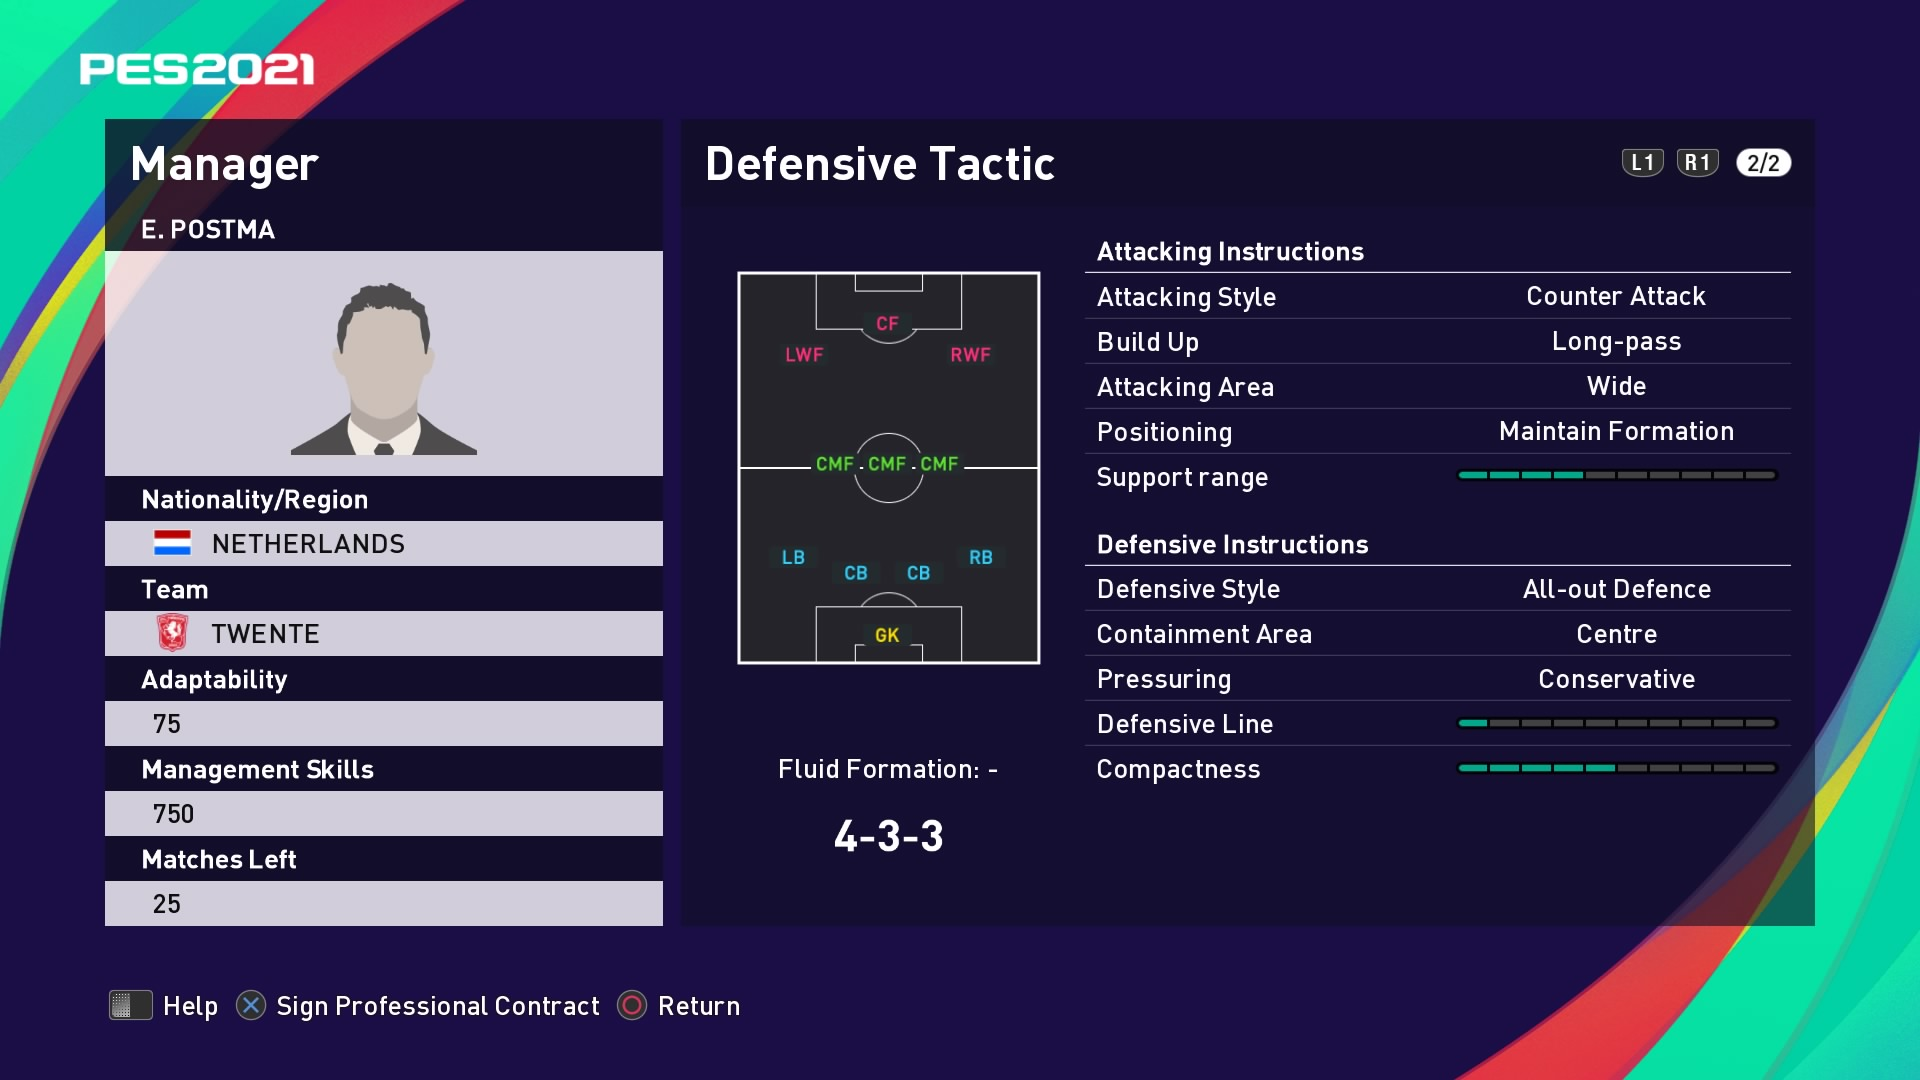 E. Postma (Ron Jans) Defensive Tactic in PES 2021 myClub